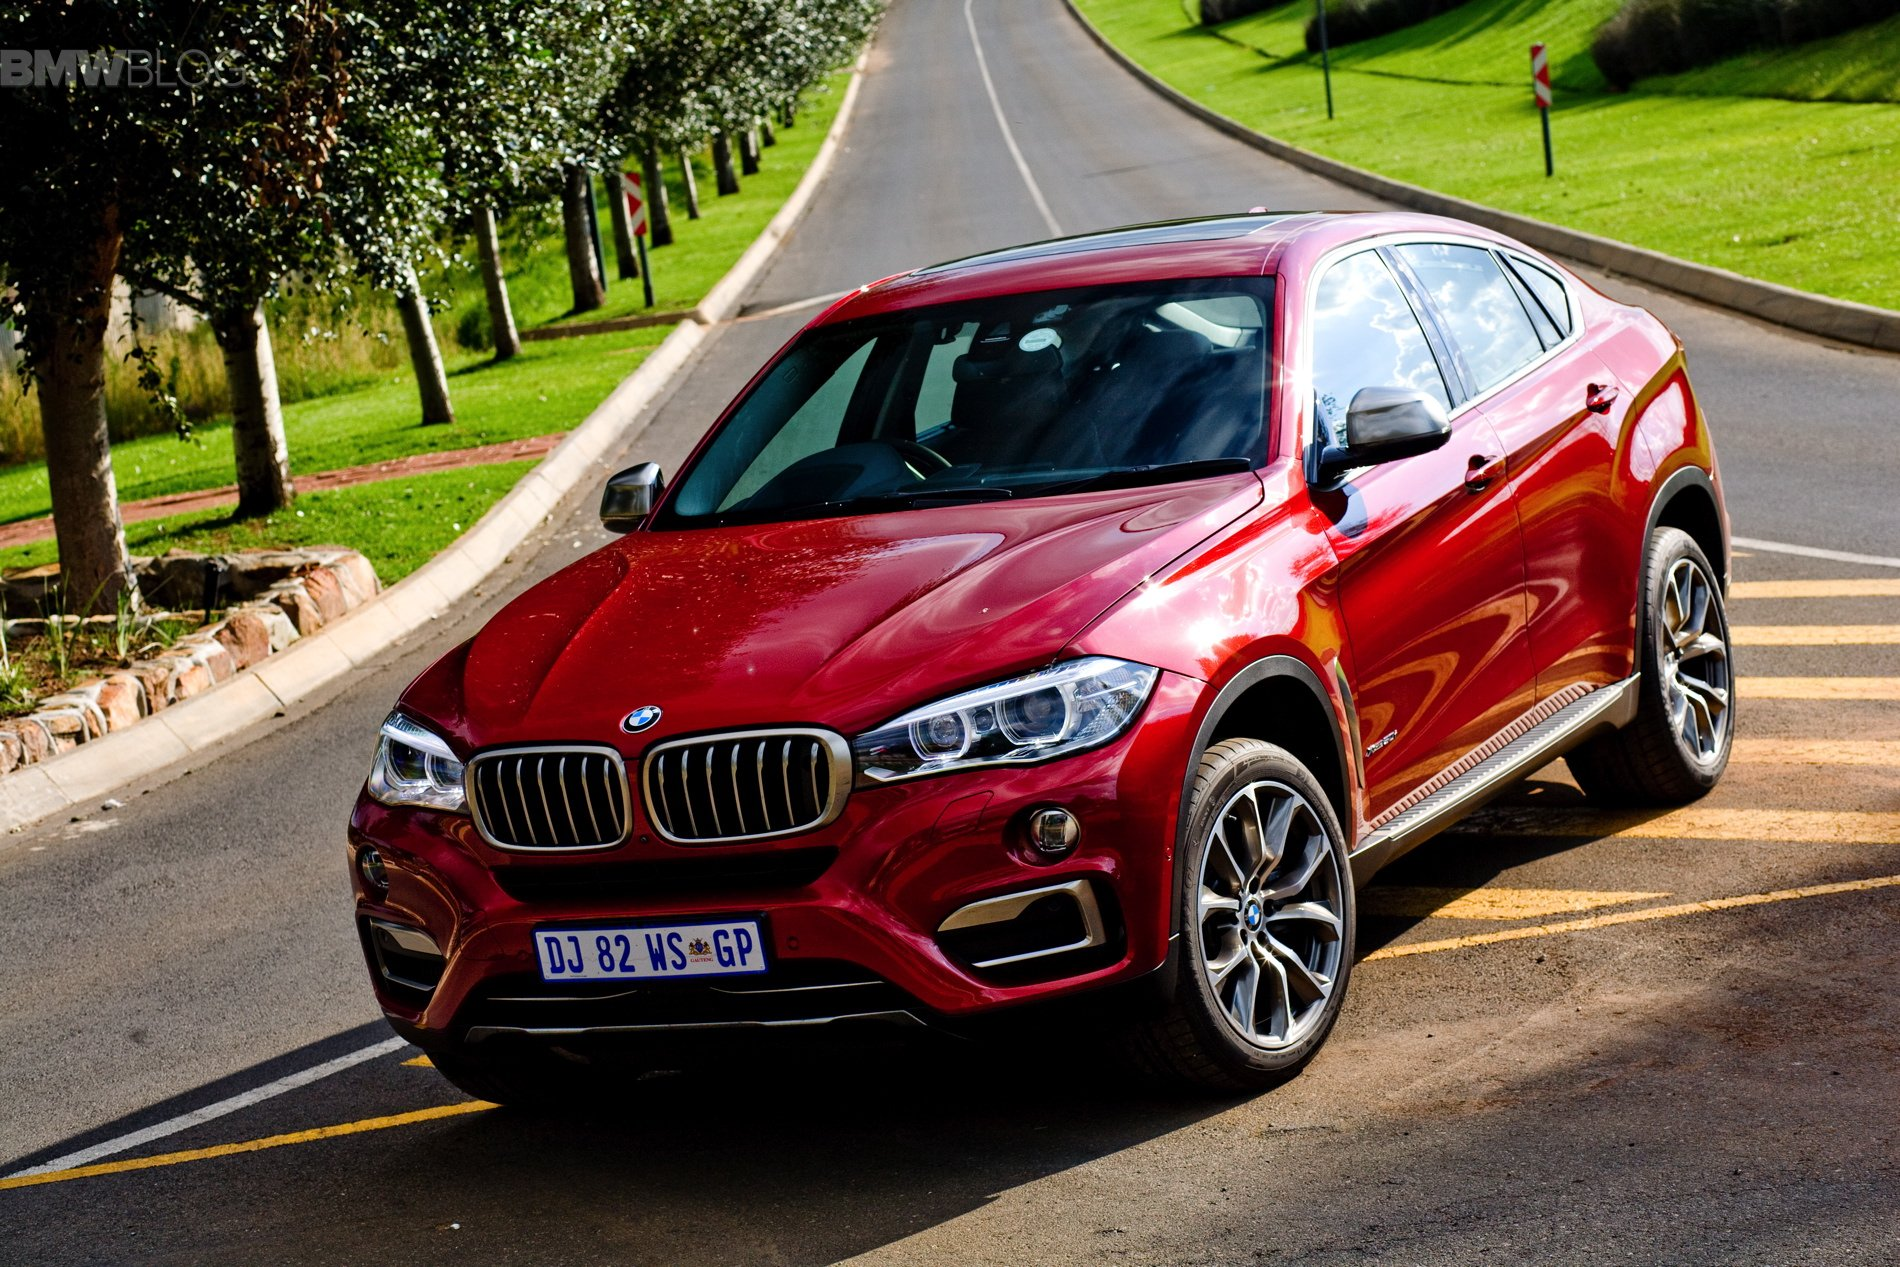 7_2015-bmw-x6-images-34